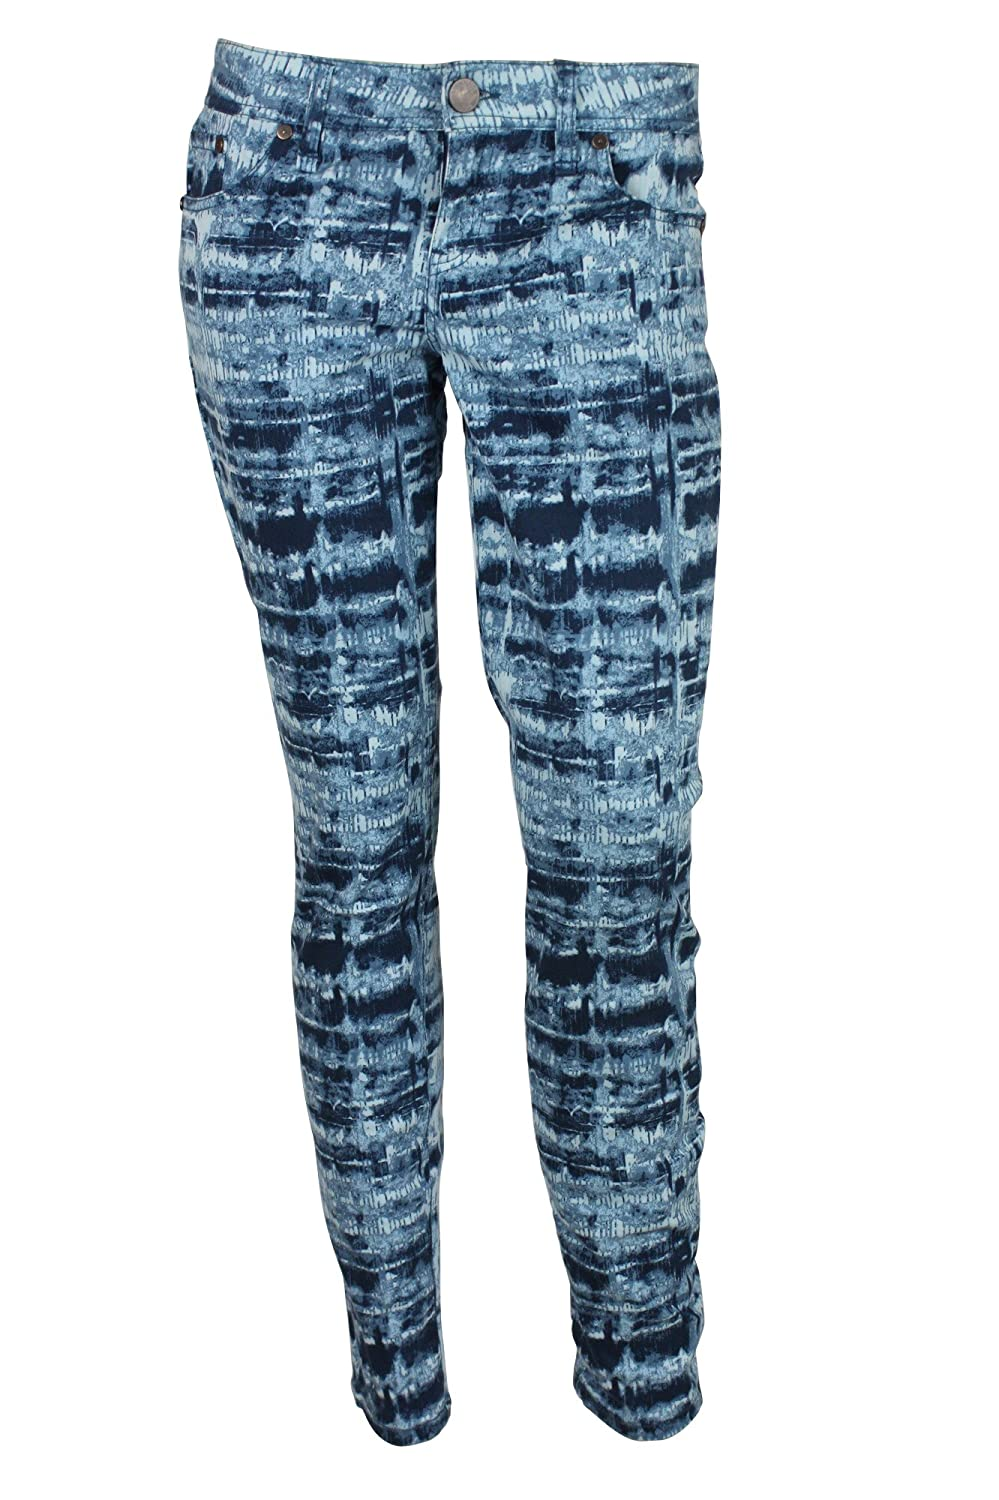 Sanctuary Surplus Womens Blue Tie Dye Printed Skinny Jeans